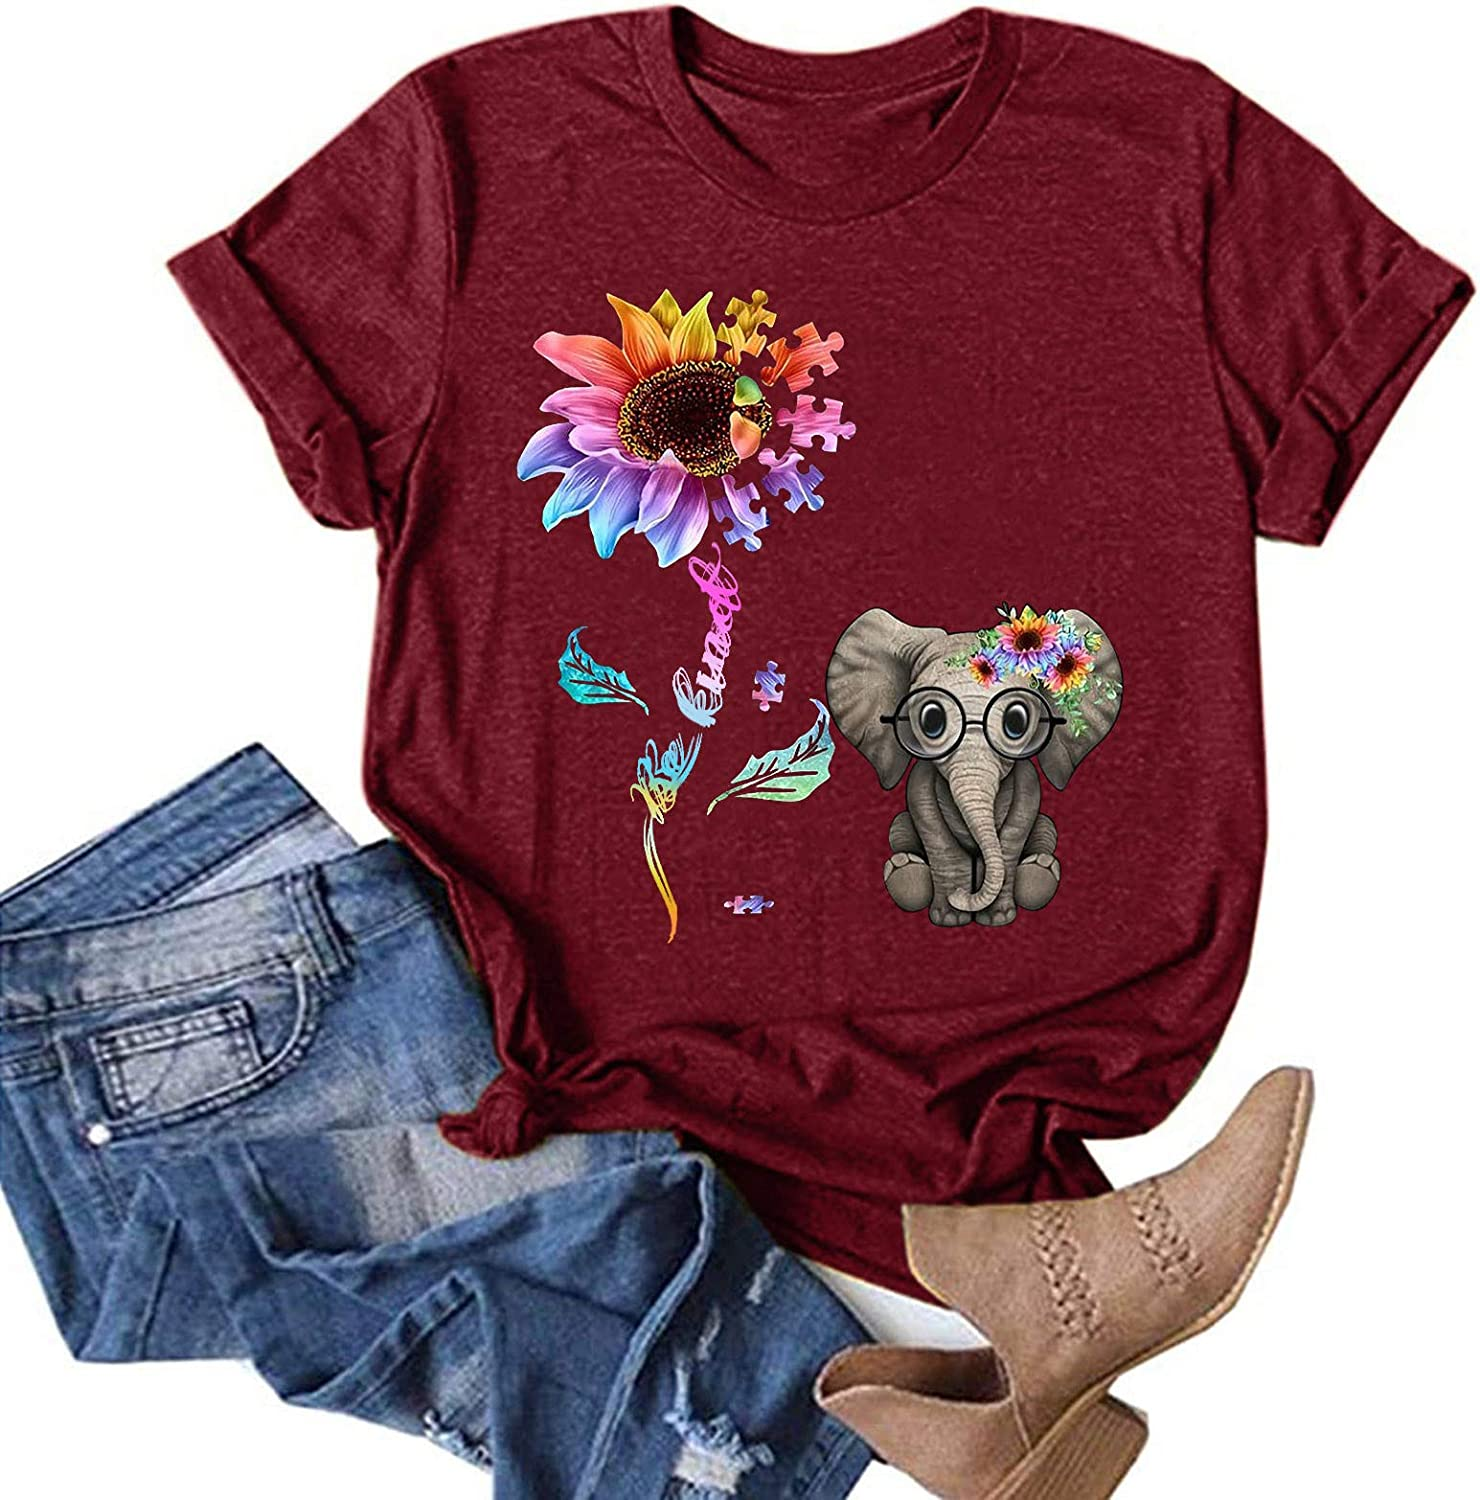 AODONG Womens Short Sleeve Tops, Womens Summer Casual T-Shirts Floral Printed O-Neck Blouse Tops Funny Graphic T-Shirts